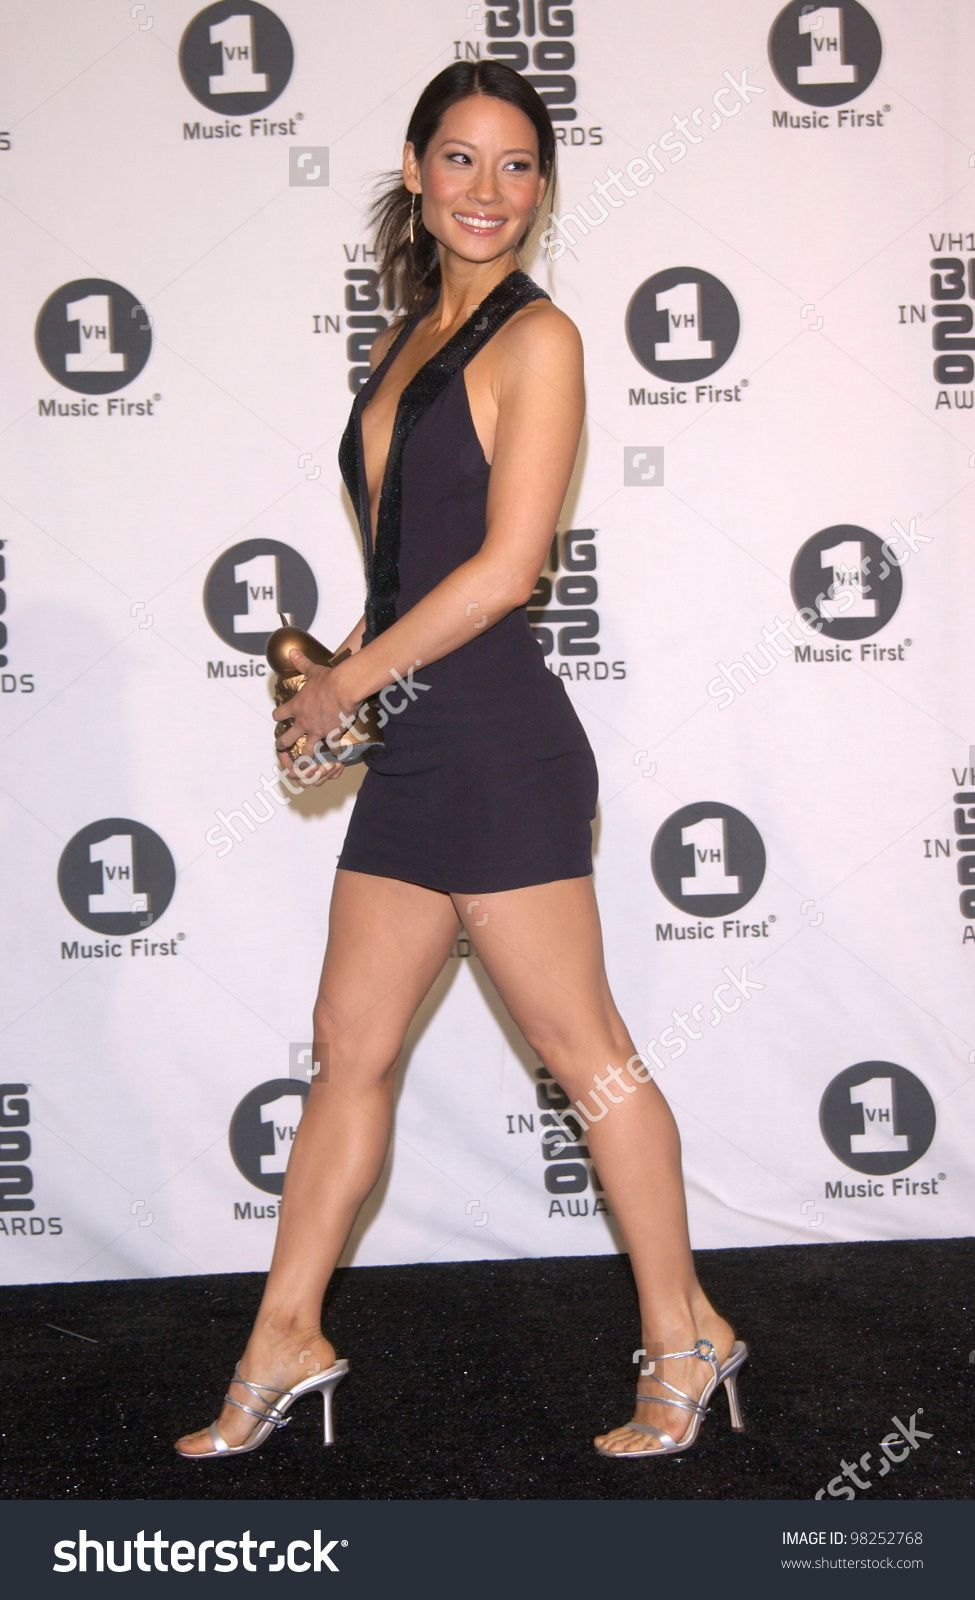 LUCY LIU at the Big in 2002 Awards in Los Angeles. Paul Smith / Featureflash - Stock Photo from the largest library of royalty-free images, ...